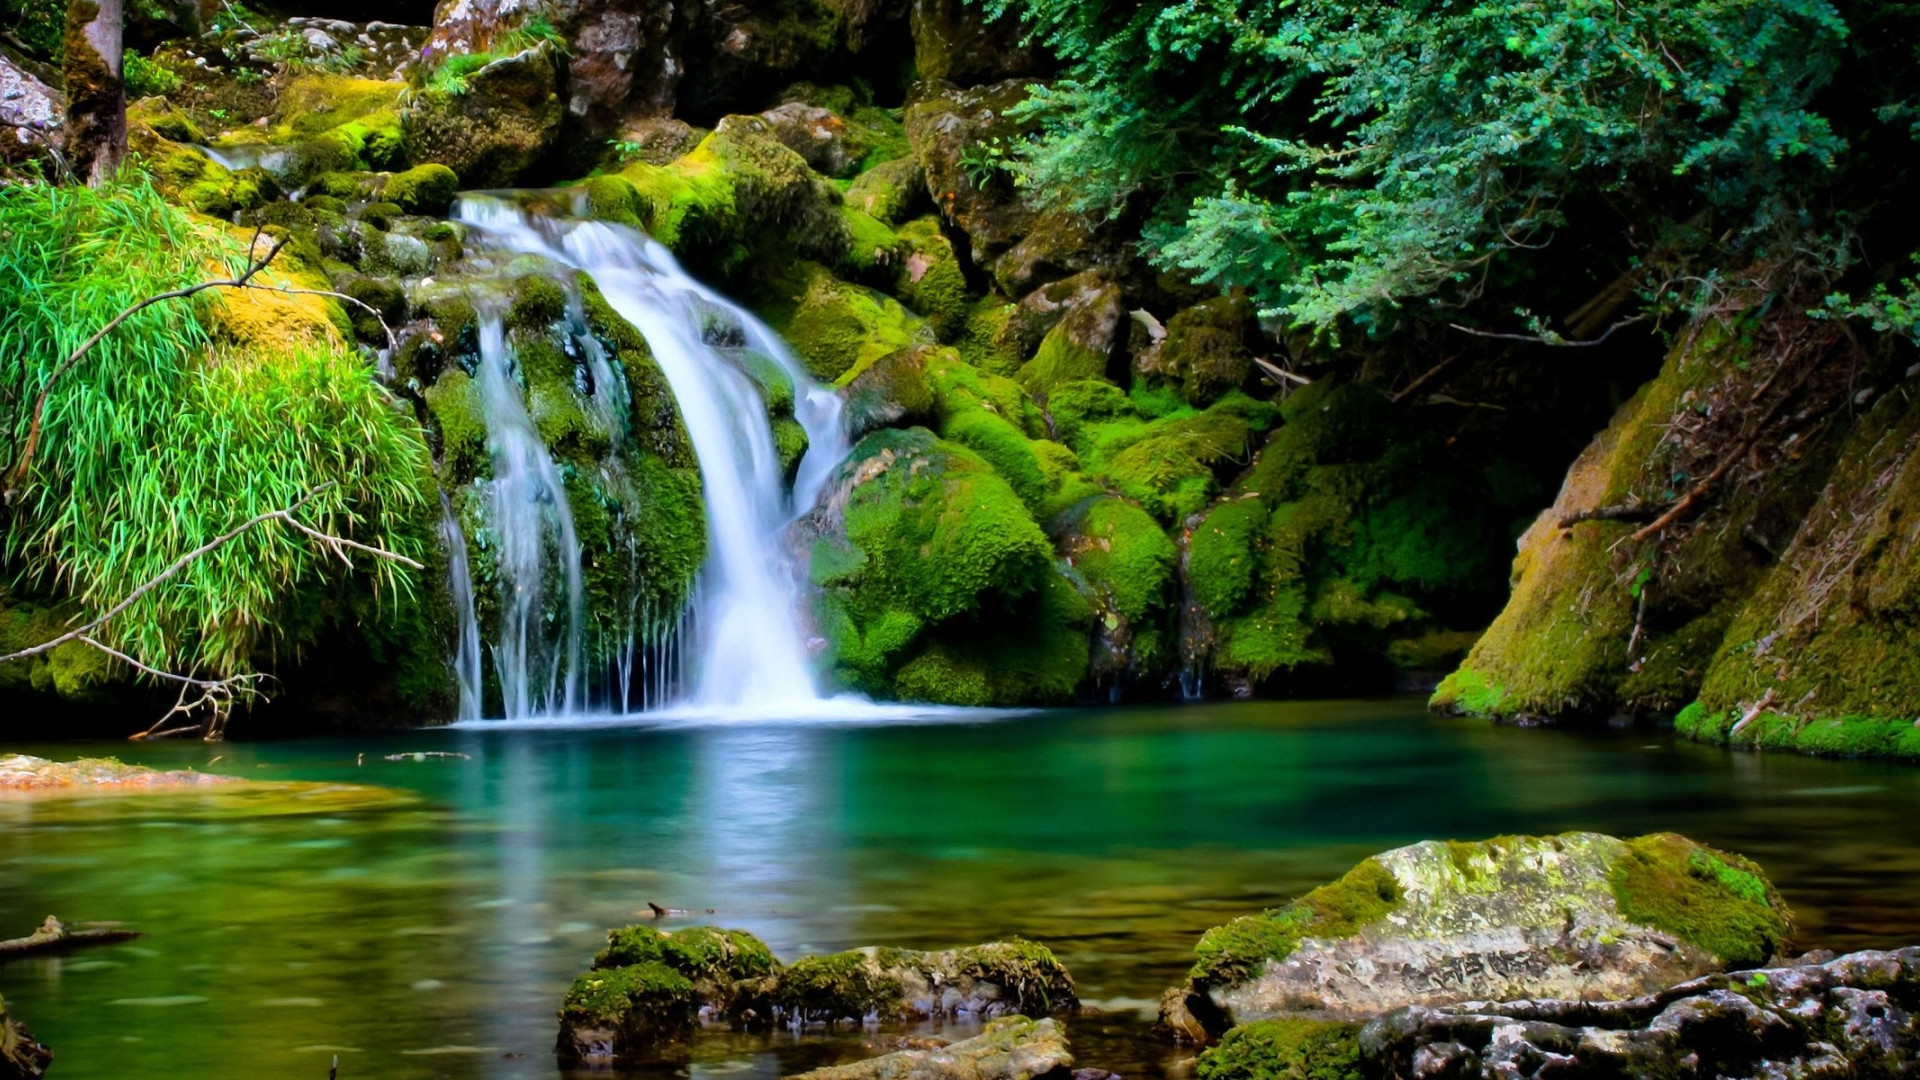 Wallpapers Nature Full Size Desktop 2018 76 Background Pictures